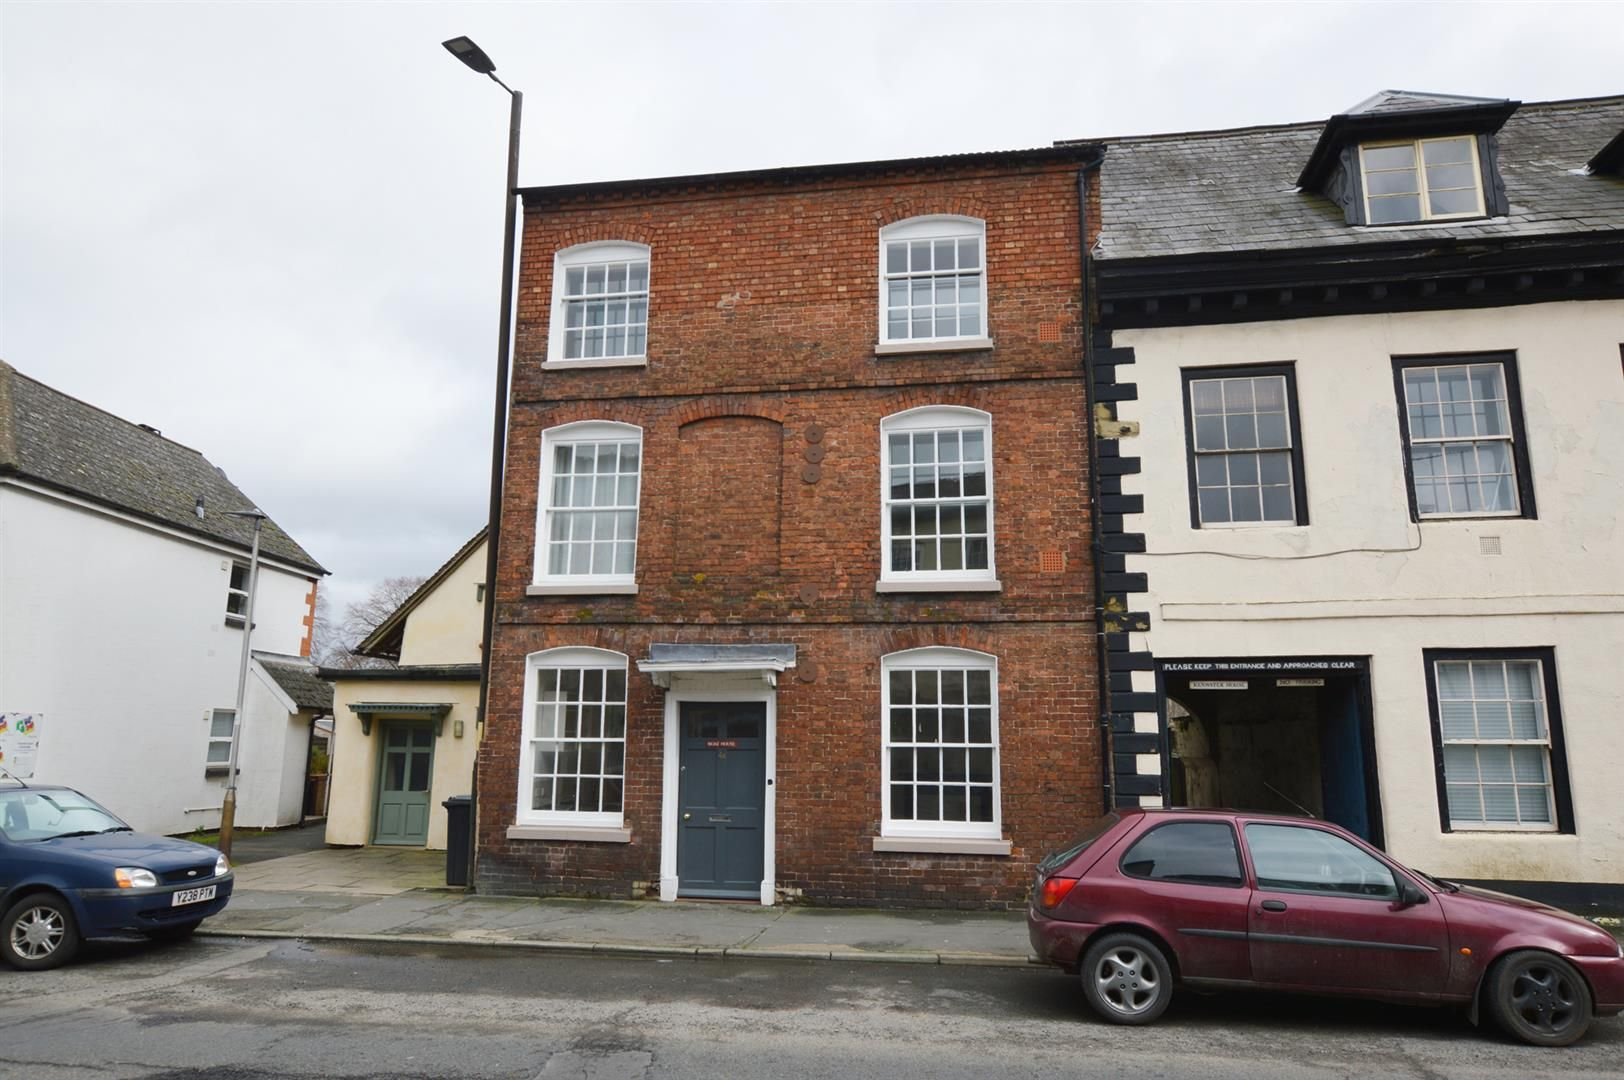 3 bed town-house for sale in Leominster  - Property Image 1